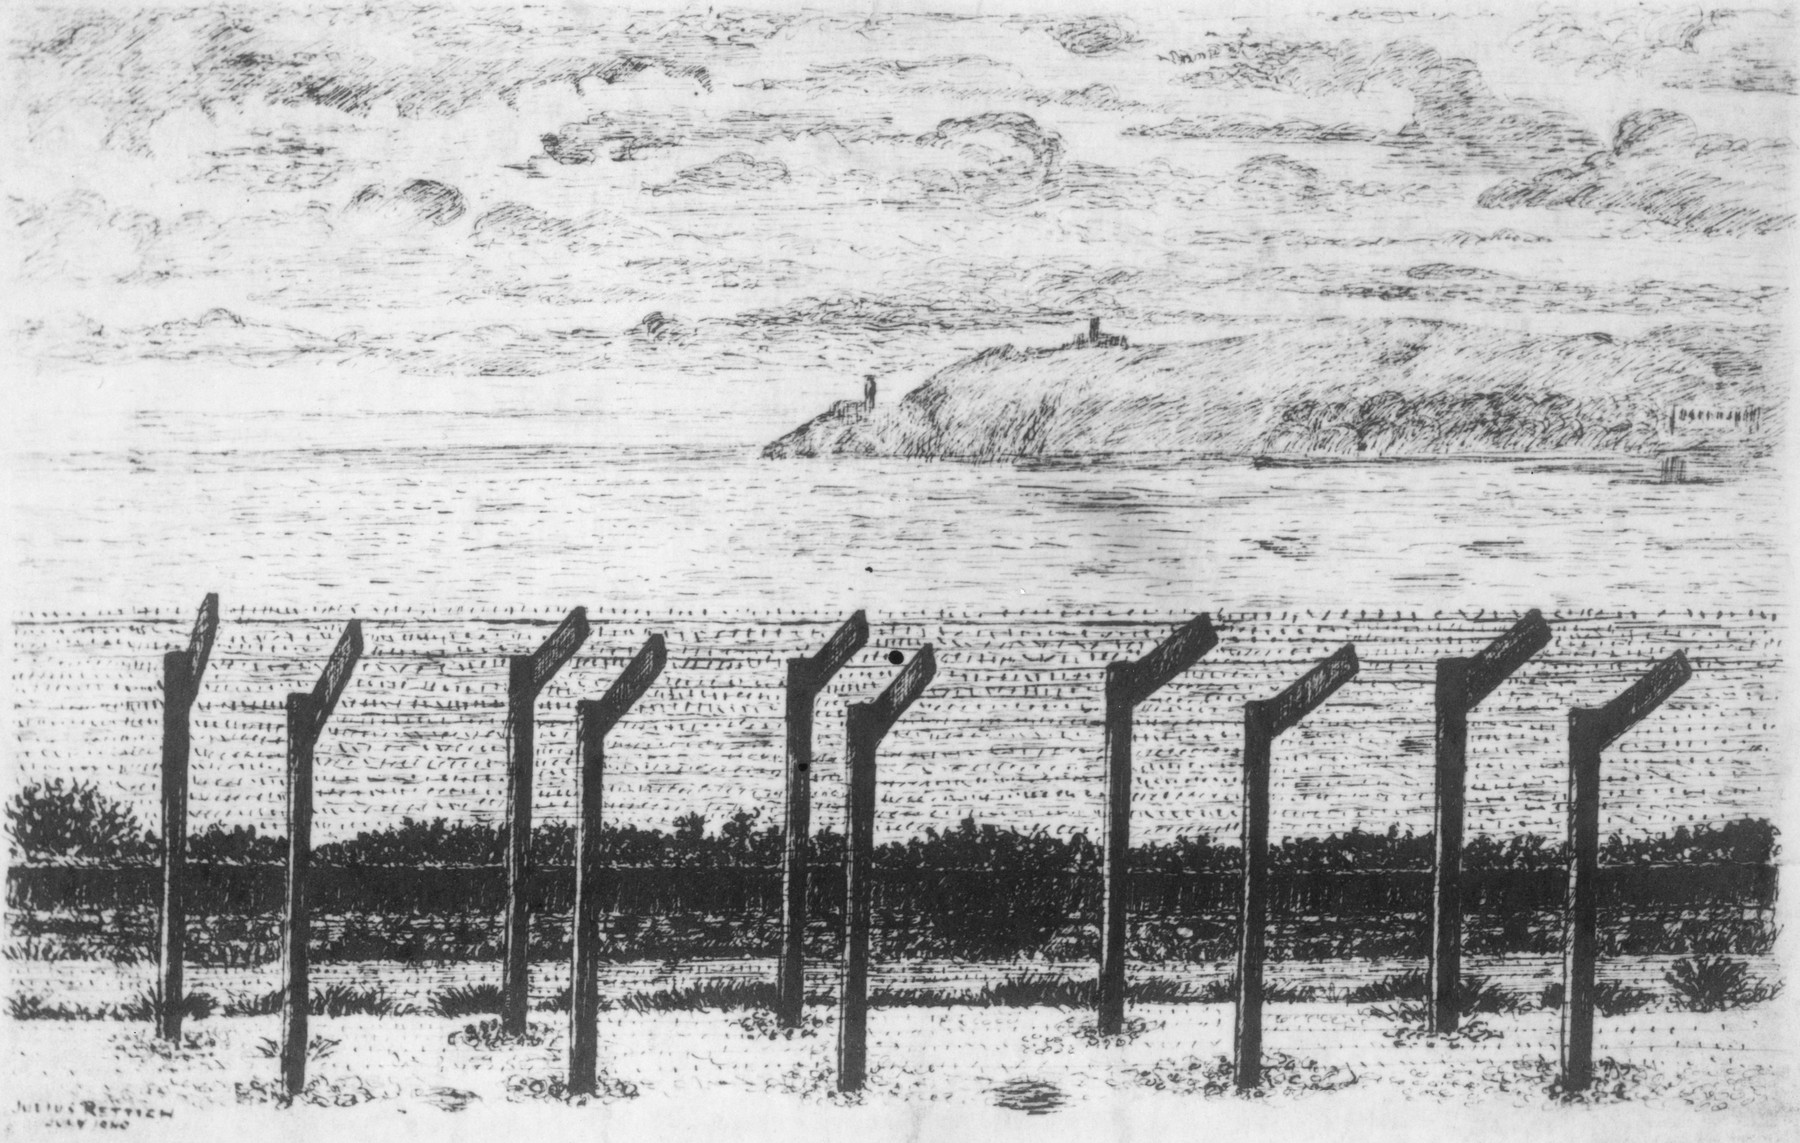 Sketch of the barbed wire fence surrounding the internment camp on the Isle of Man.